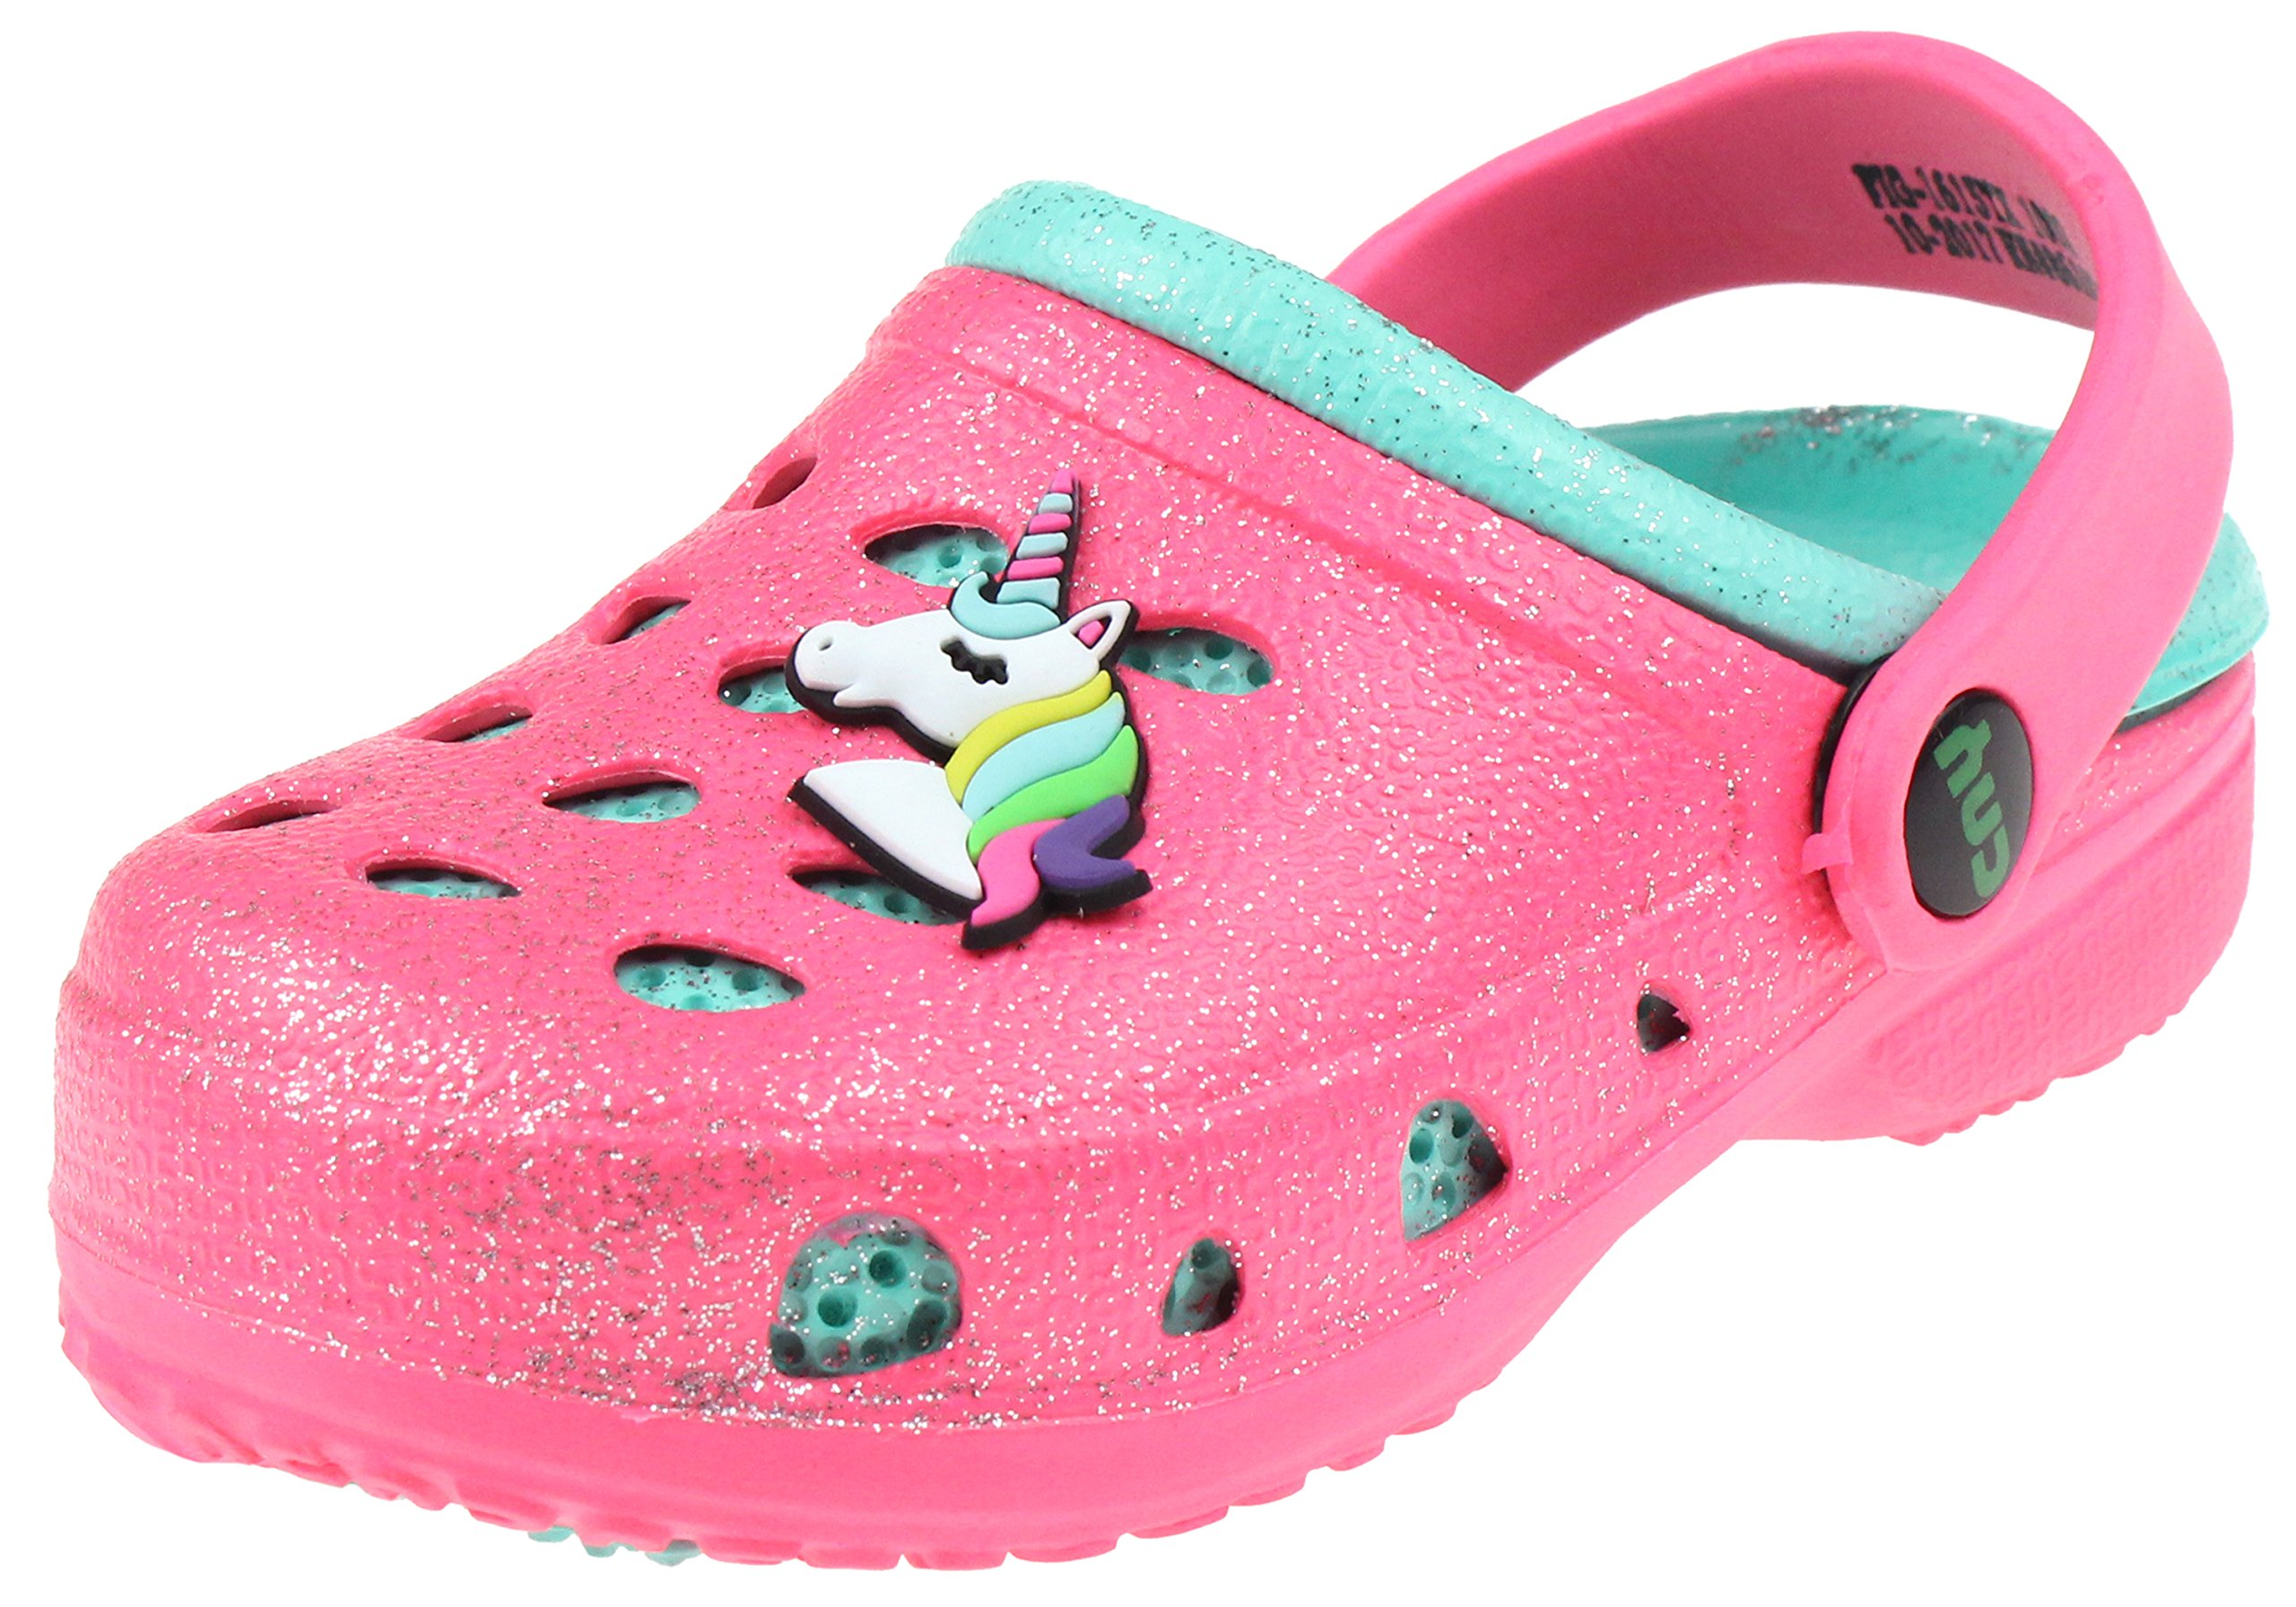 Capelli New York Toddler Girls Allover Glitter Clog with Unicorn Jelly Patch Pink 6/7